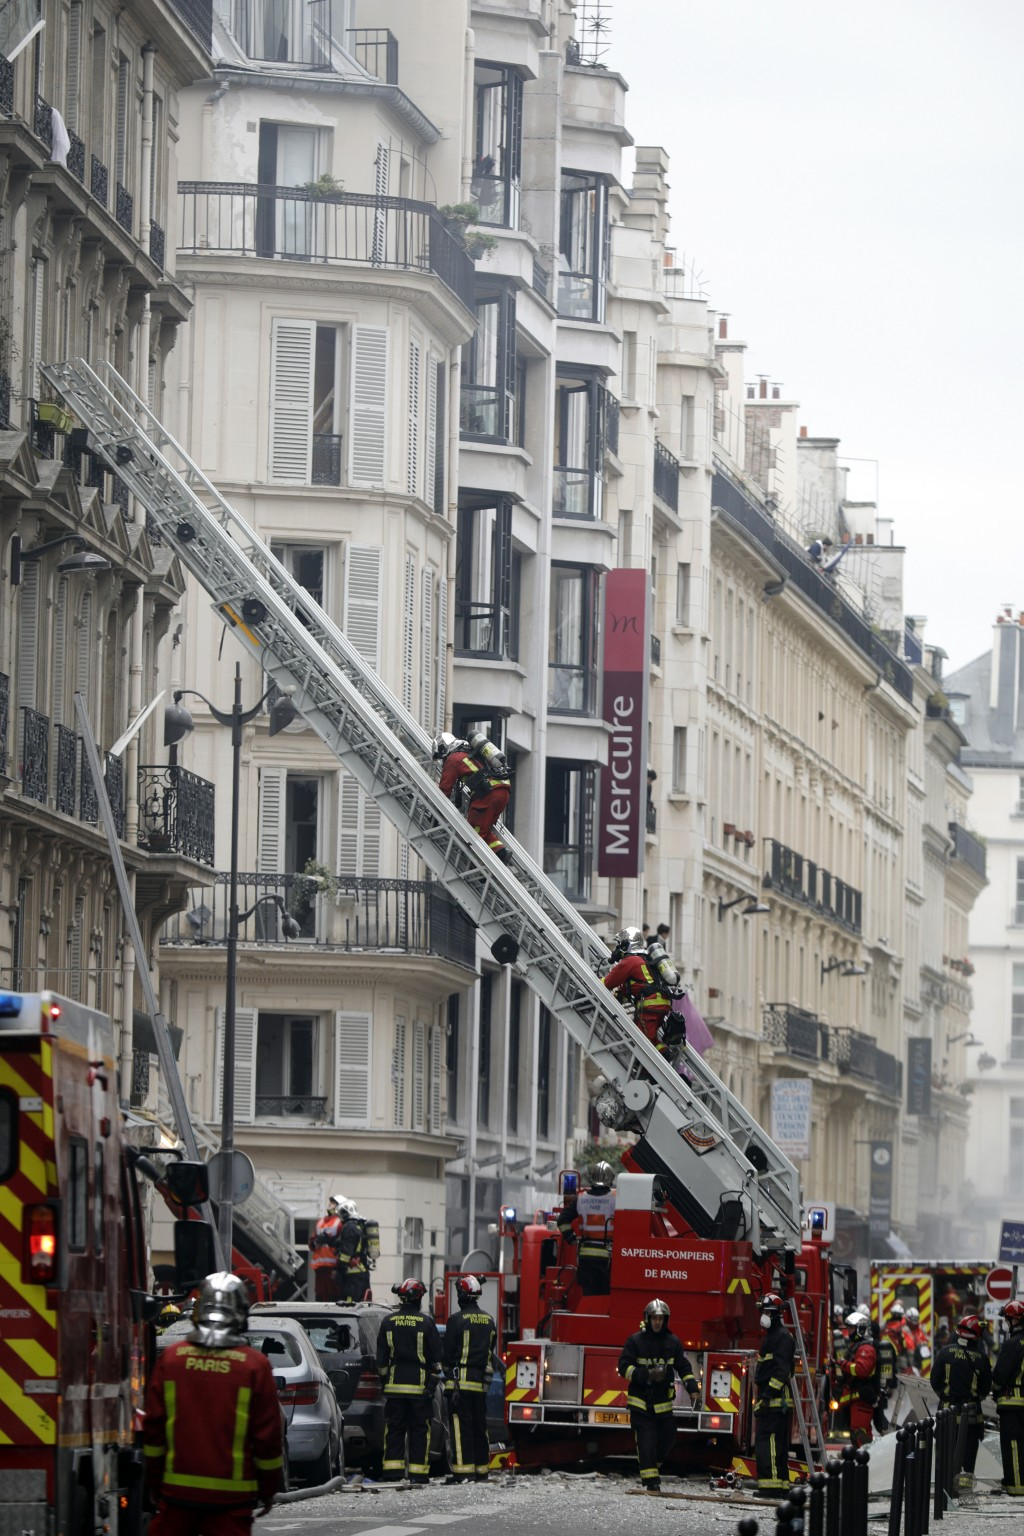 Firefighters work at the scene of a gas leak explosion in Paris, France, Saturday, Jan. 12, 2019. Paris police say several people have been injured in